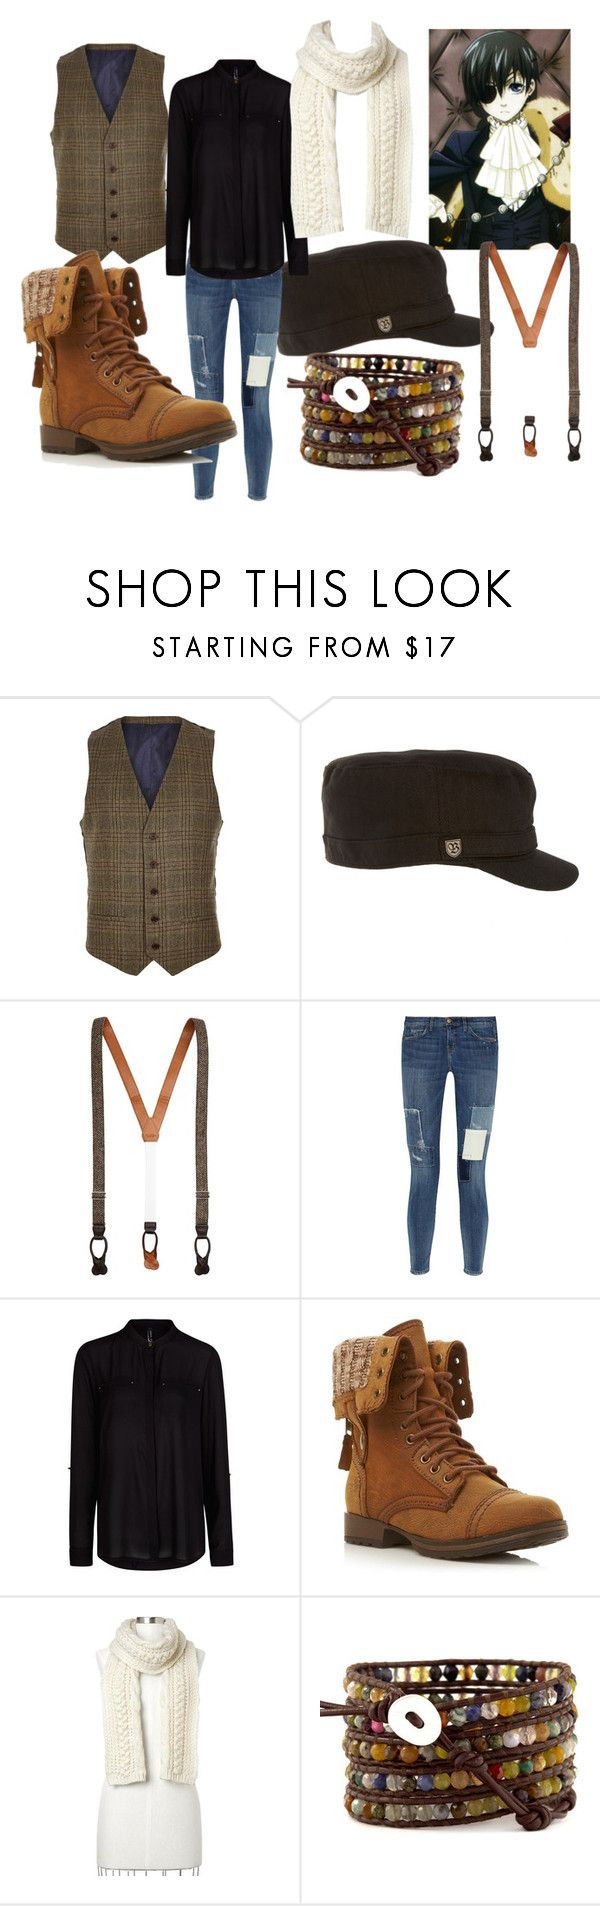 Disguised Ciel Phantomhive by animangafashion on Polyvore featuring moda, MANGO, Current/Elliott, Head Over Heels by Dune, Gap, River Island, Brixton, Brooks Brothers and Ciel